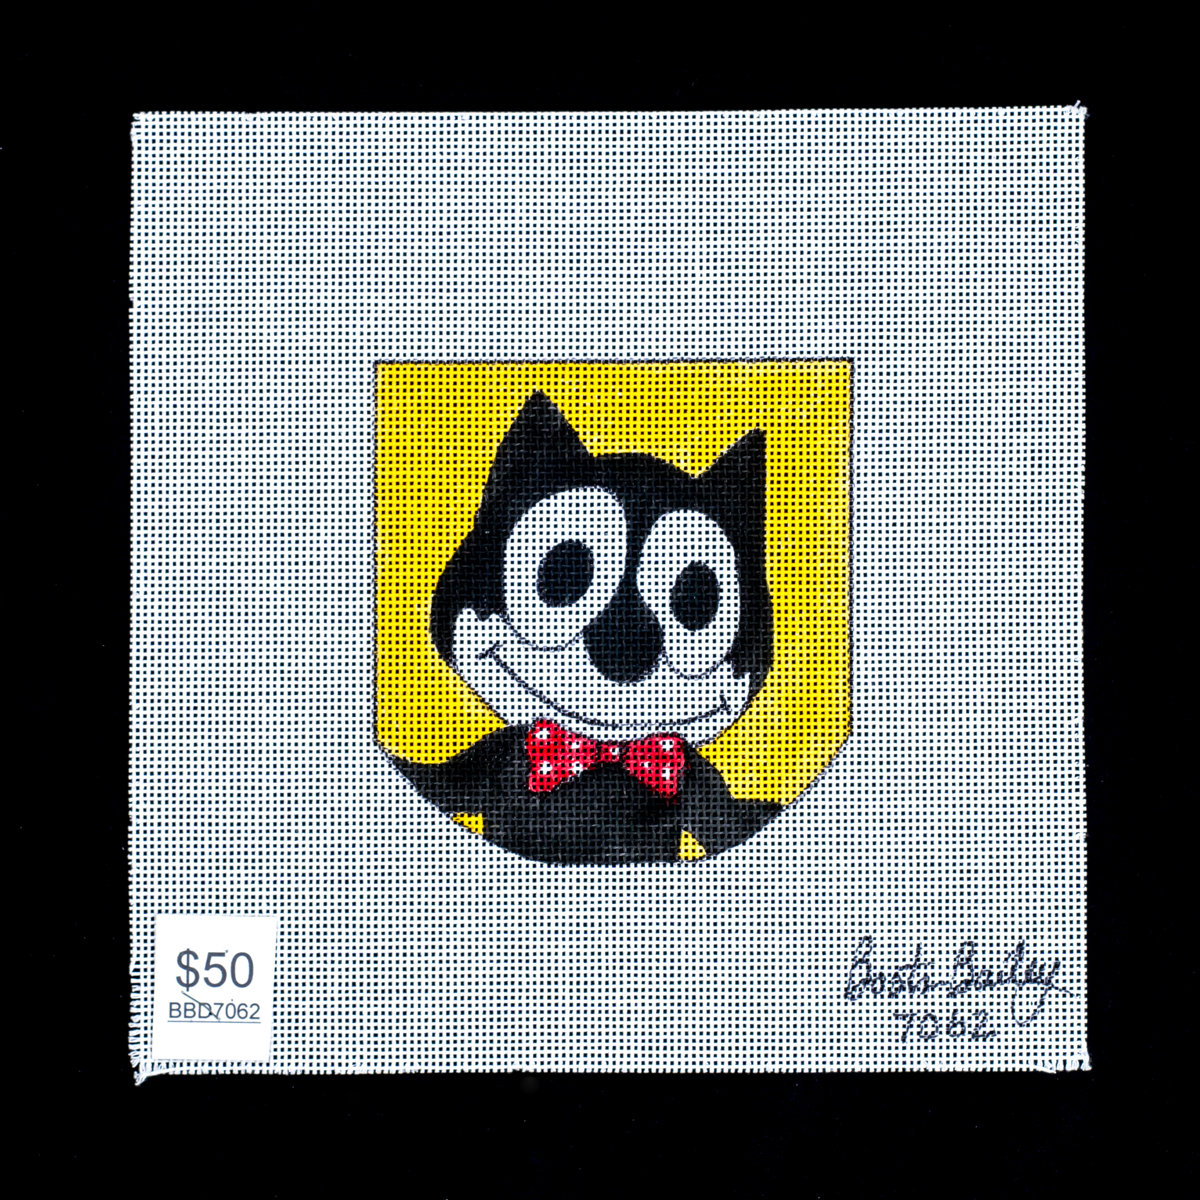 Boots Bailey, Felix the Cat, BBD7062